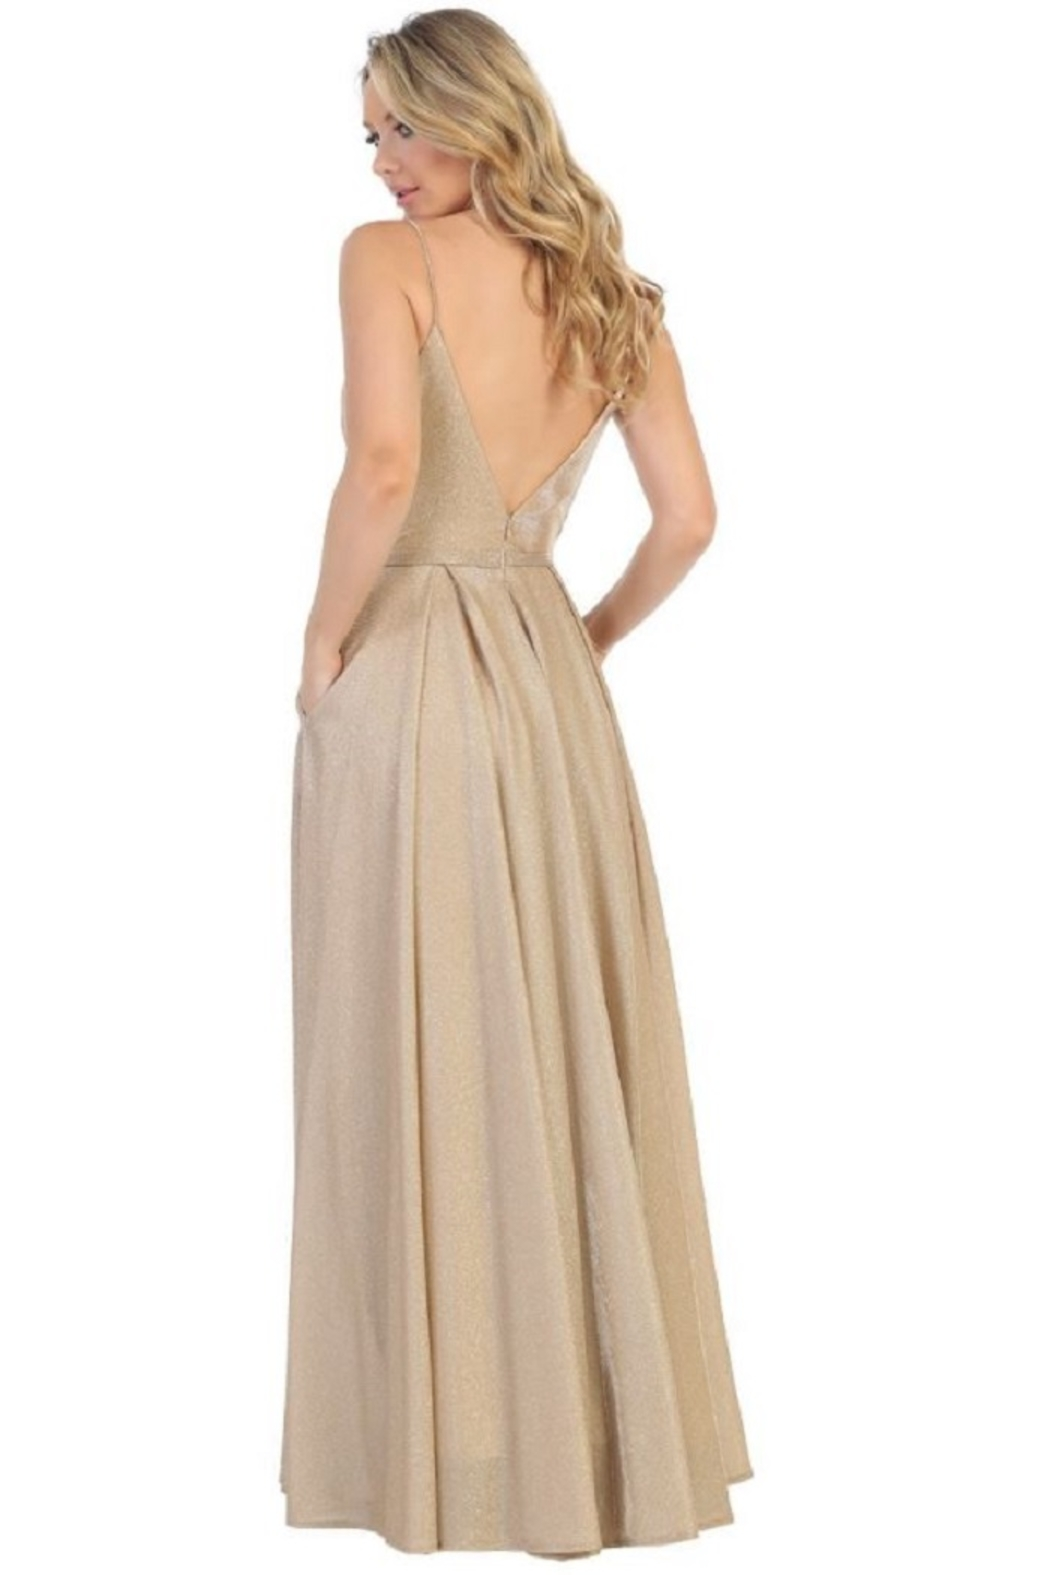 Let's Gold Metallic Pleated Formal Long Dress - Front Full Image